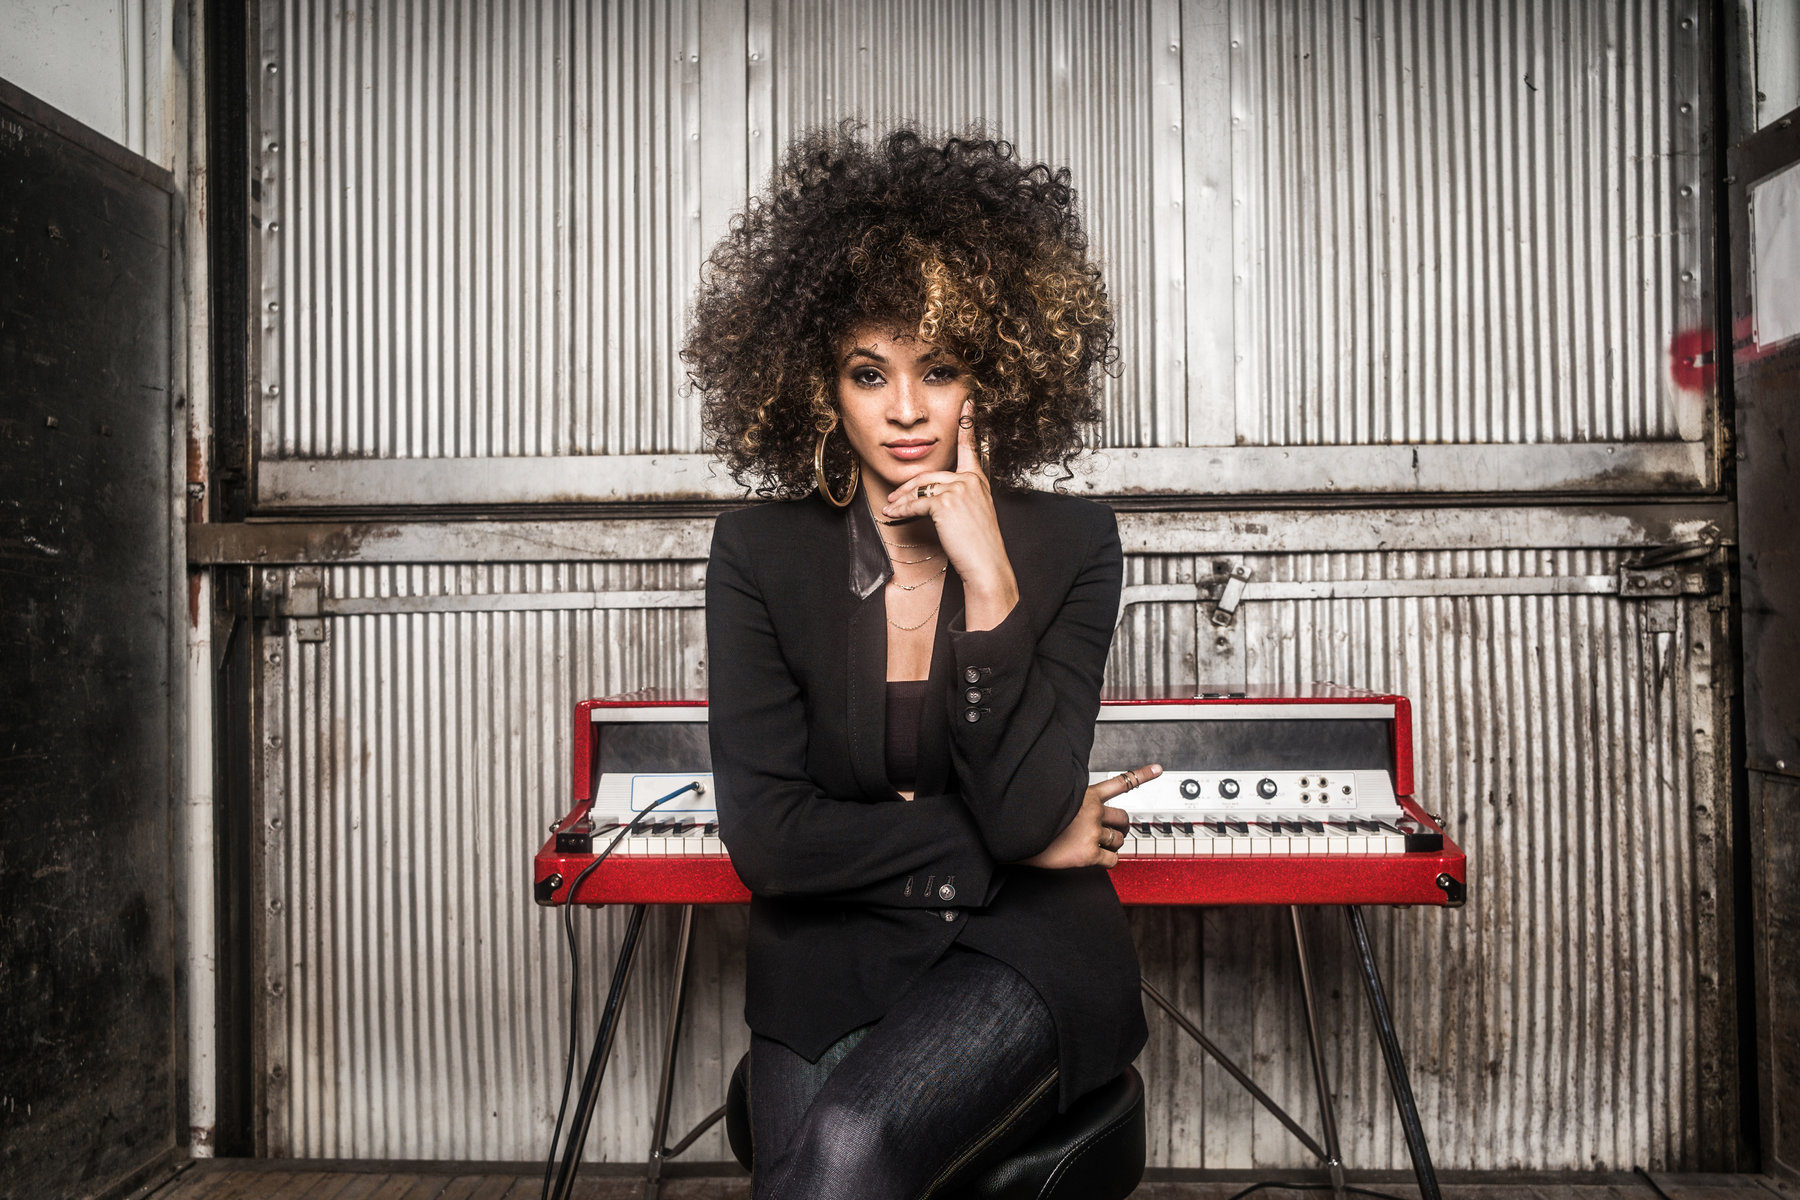 Vocalist Kandace Springs